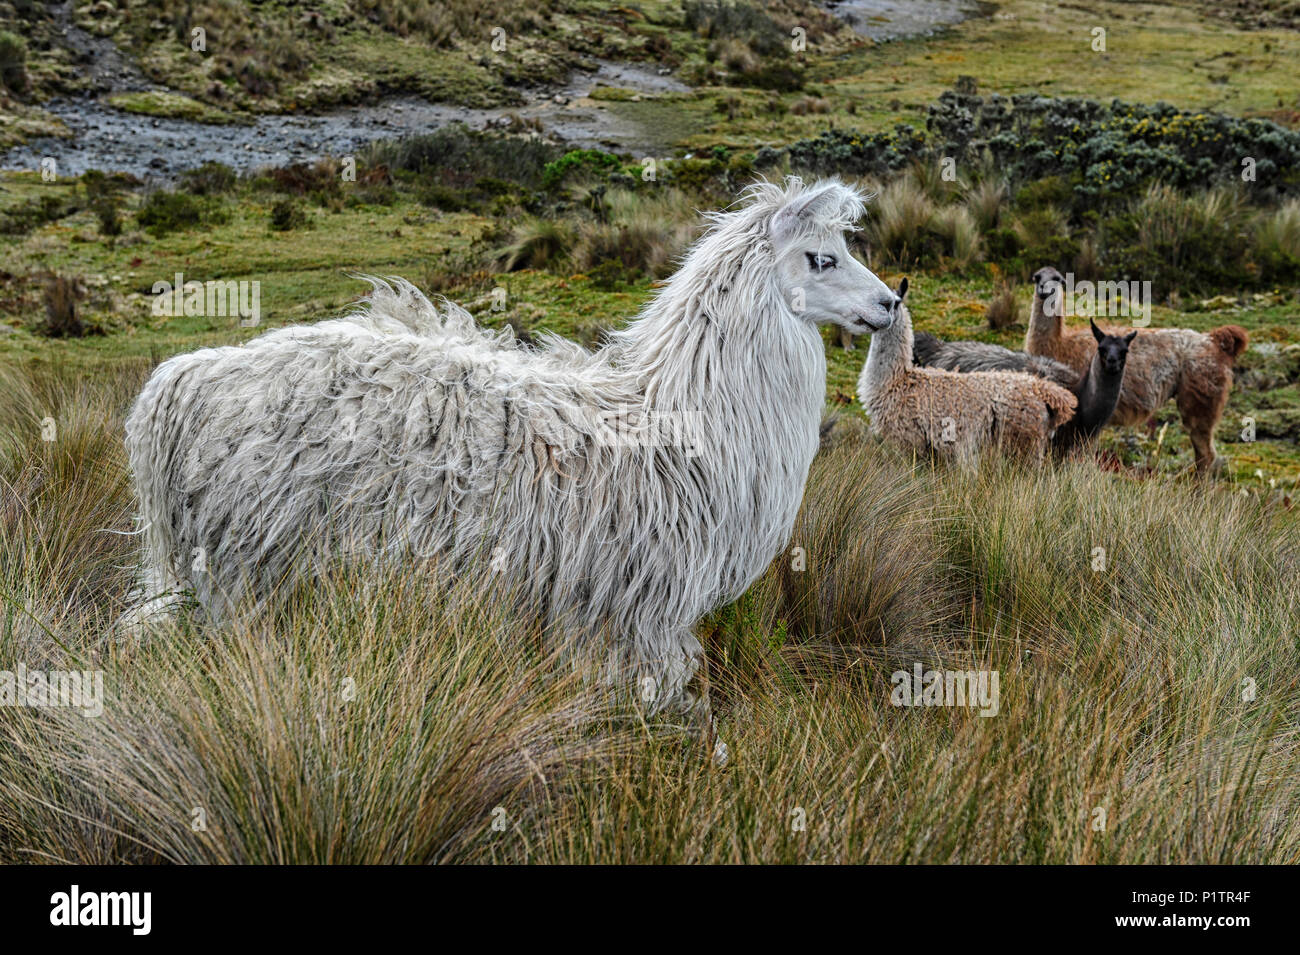 Alpaca and llamas at theEl Cajas National Park or Cajas National Park is a national park in the highlands of Ecuador. - Stock Image